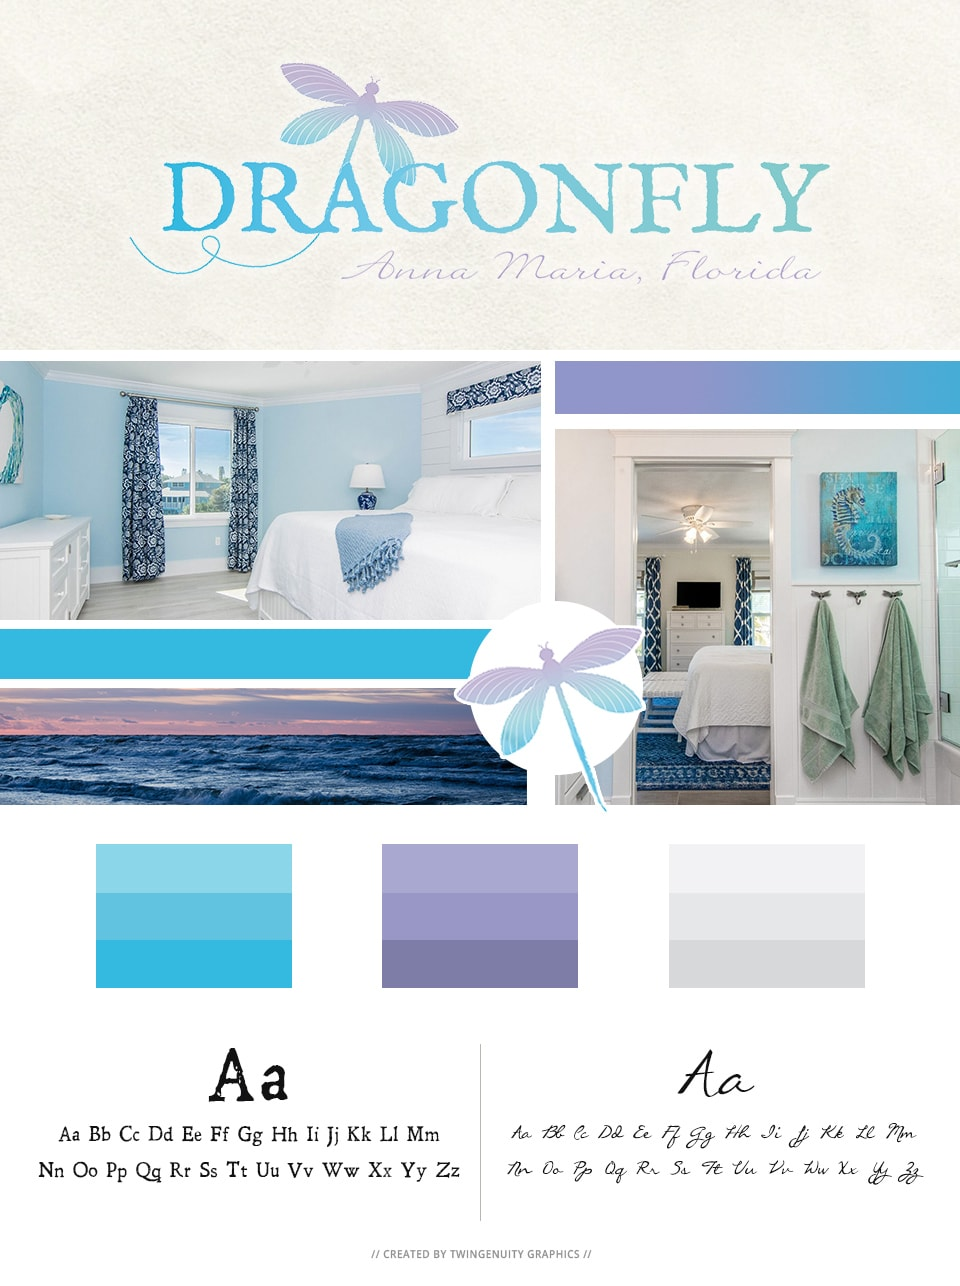 branding board for dragonfly vacation homes